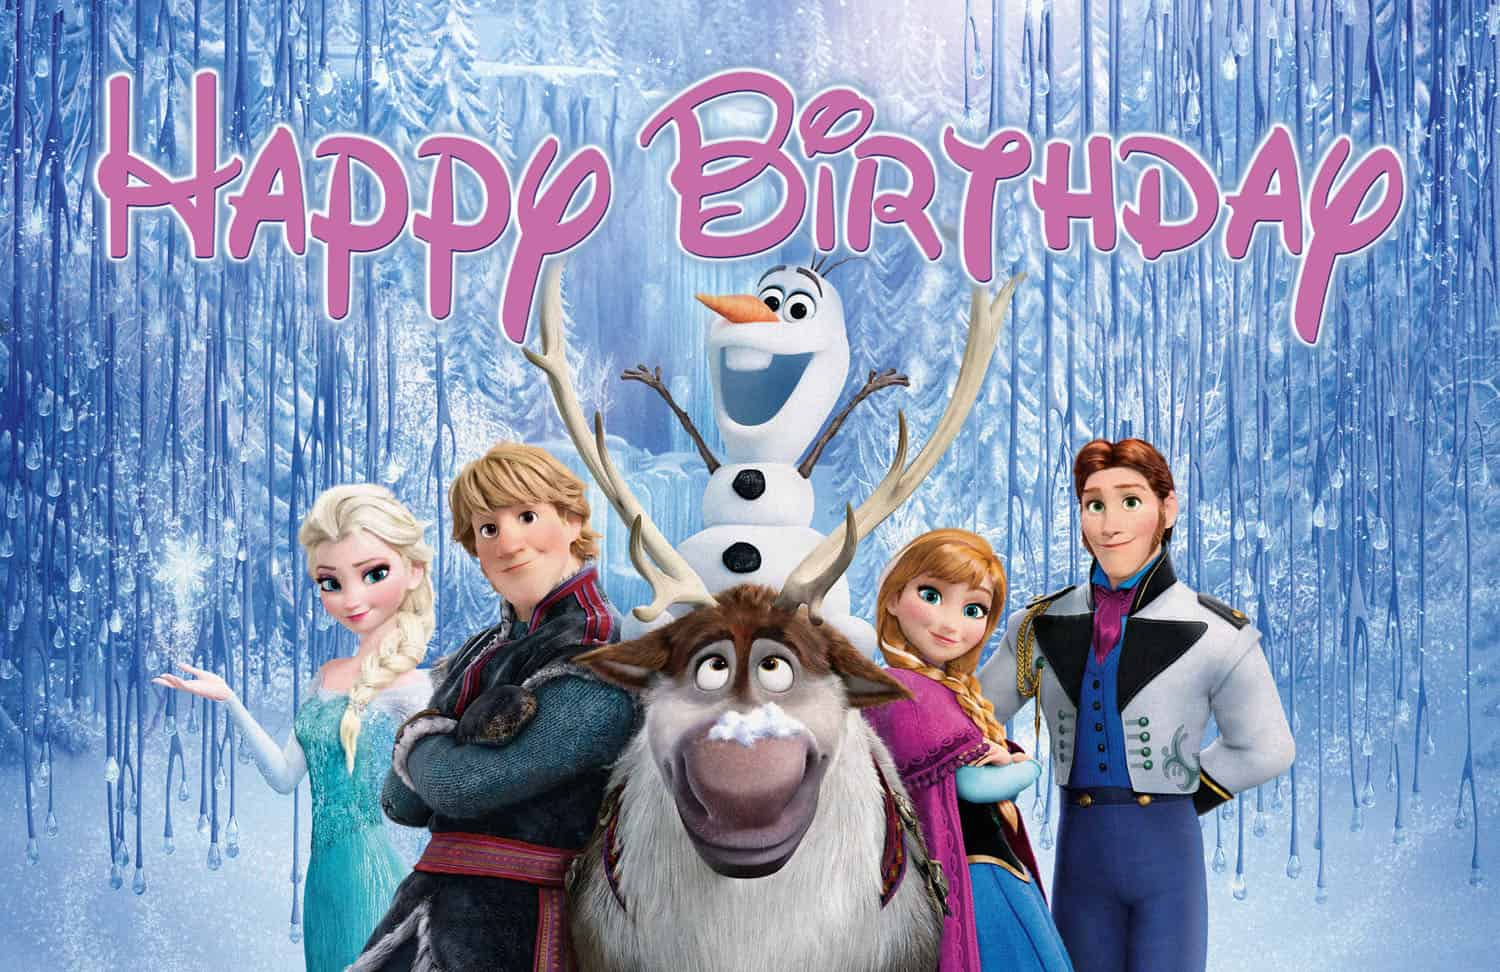 Tremendous Frozen Happy Birthday Images Memes Gifs And Quotes Personalised Birthday Cards Paralily Jamesorg